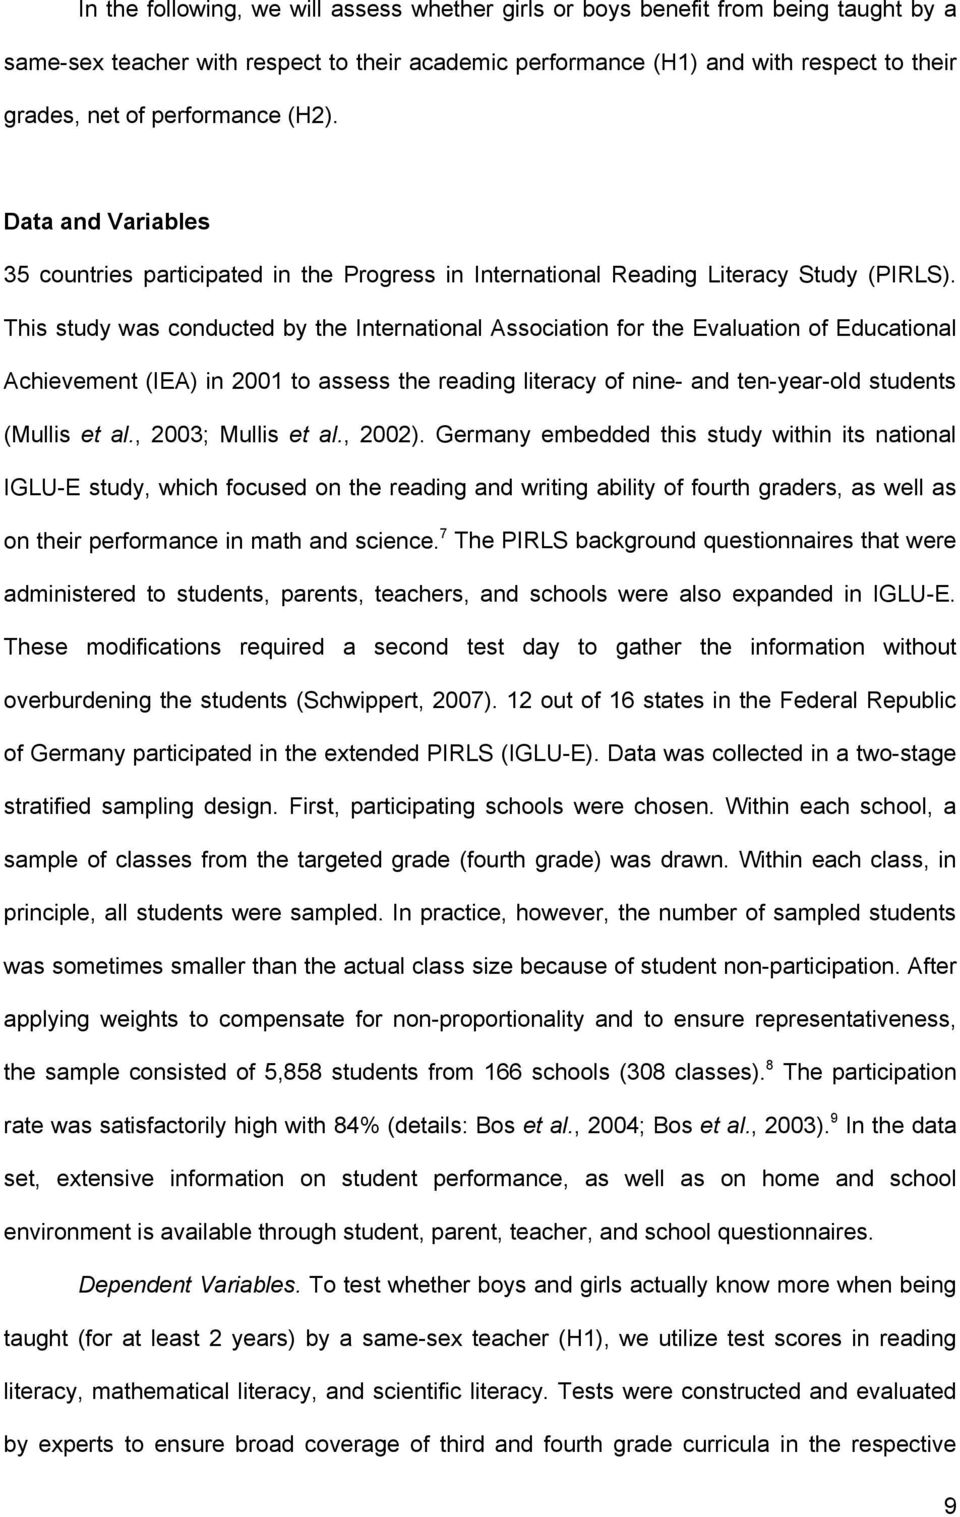 This study was conducted by the International Association for the Evaluation of Educational Achievement (IEA) in 2001 to assess the reading literacy of nine- and ten-year-old students (Mullis et al.